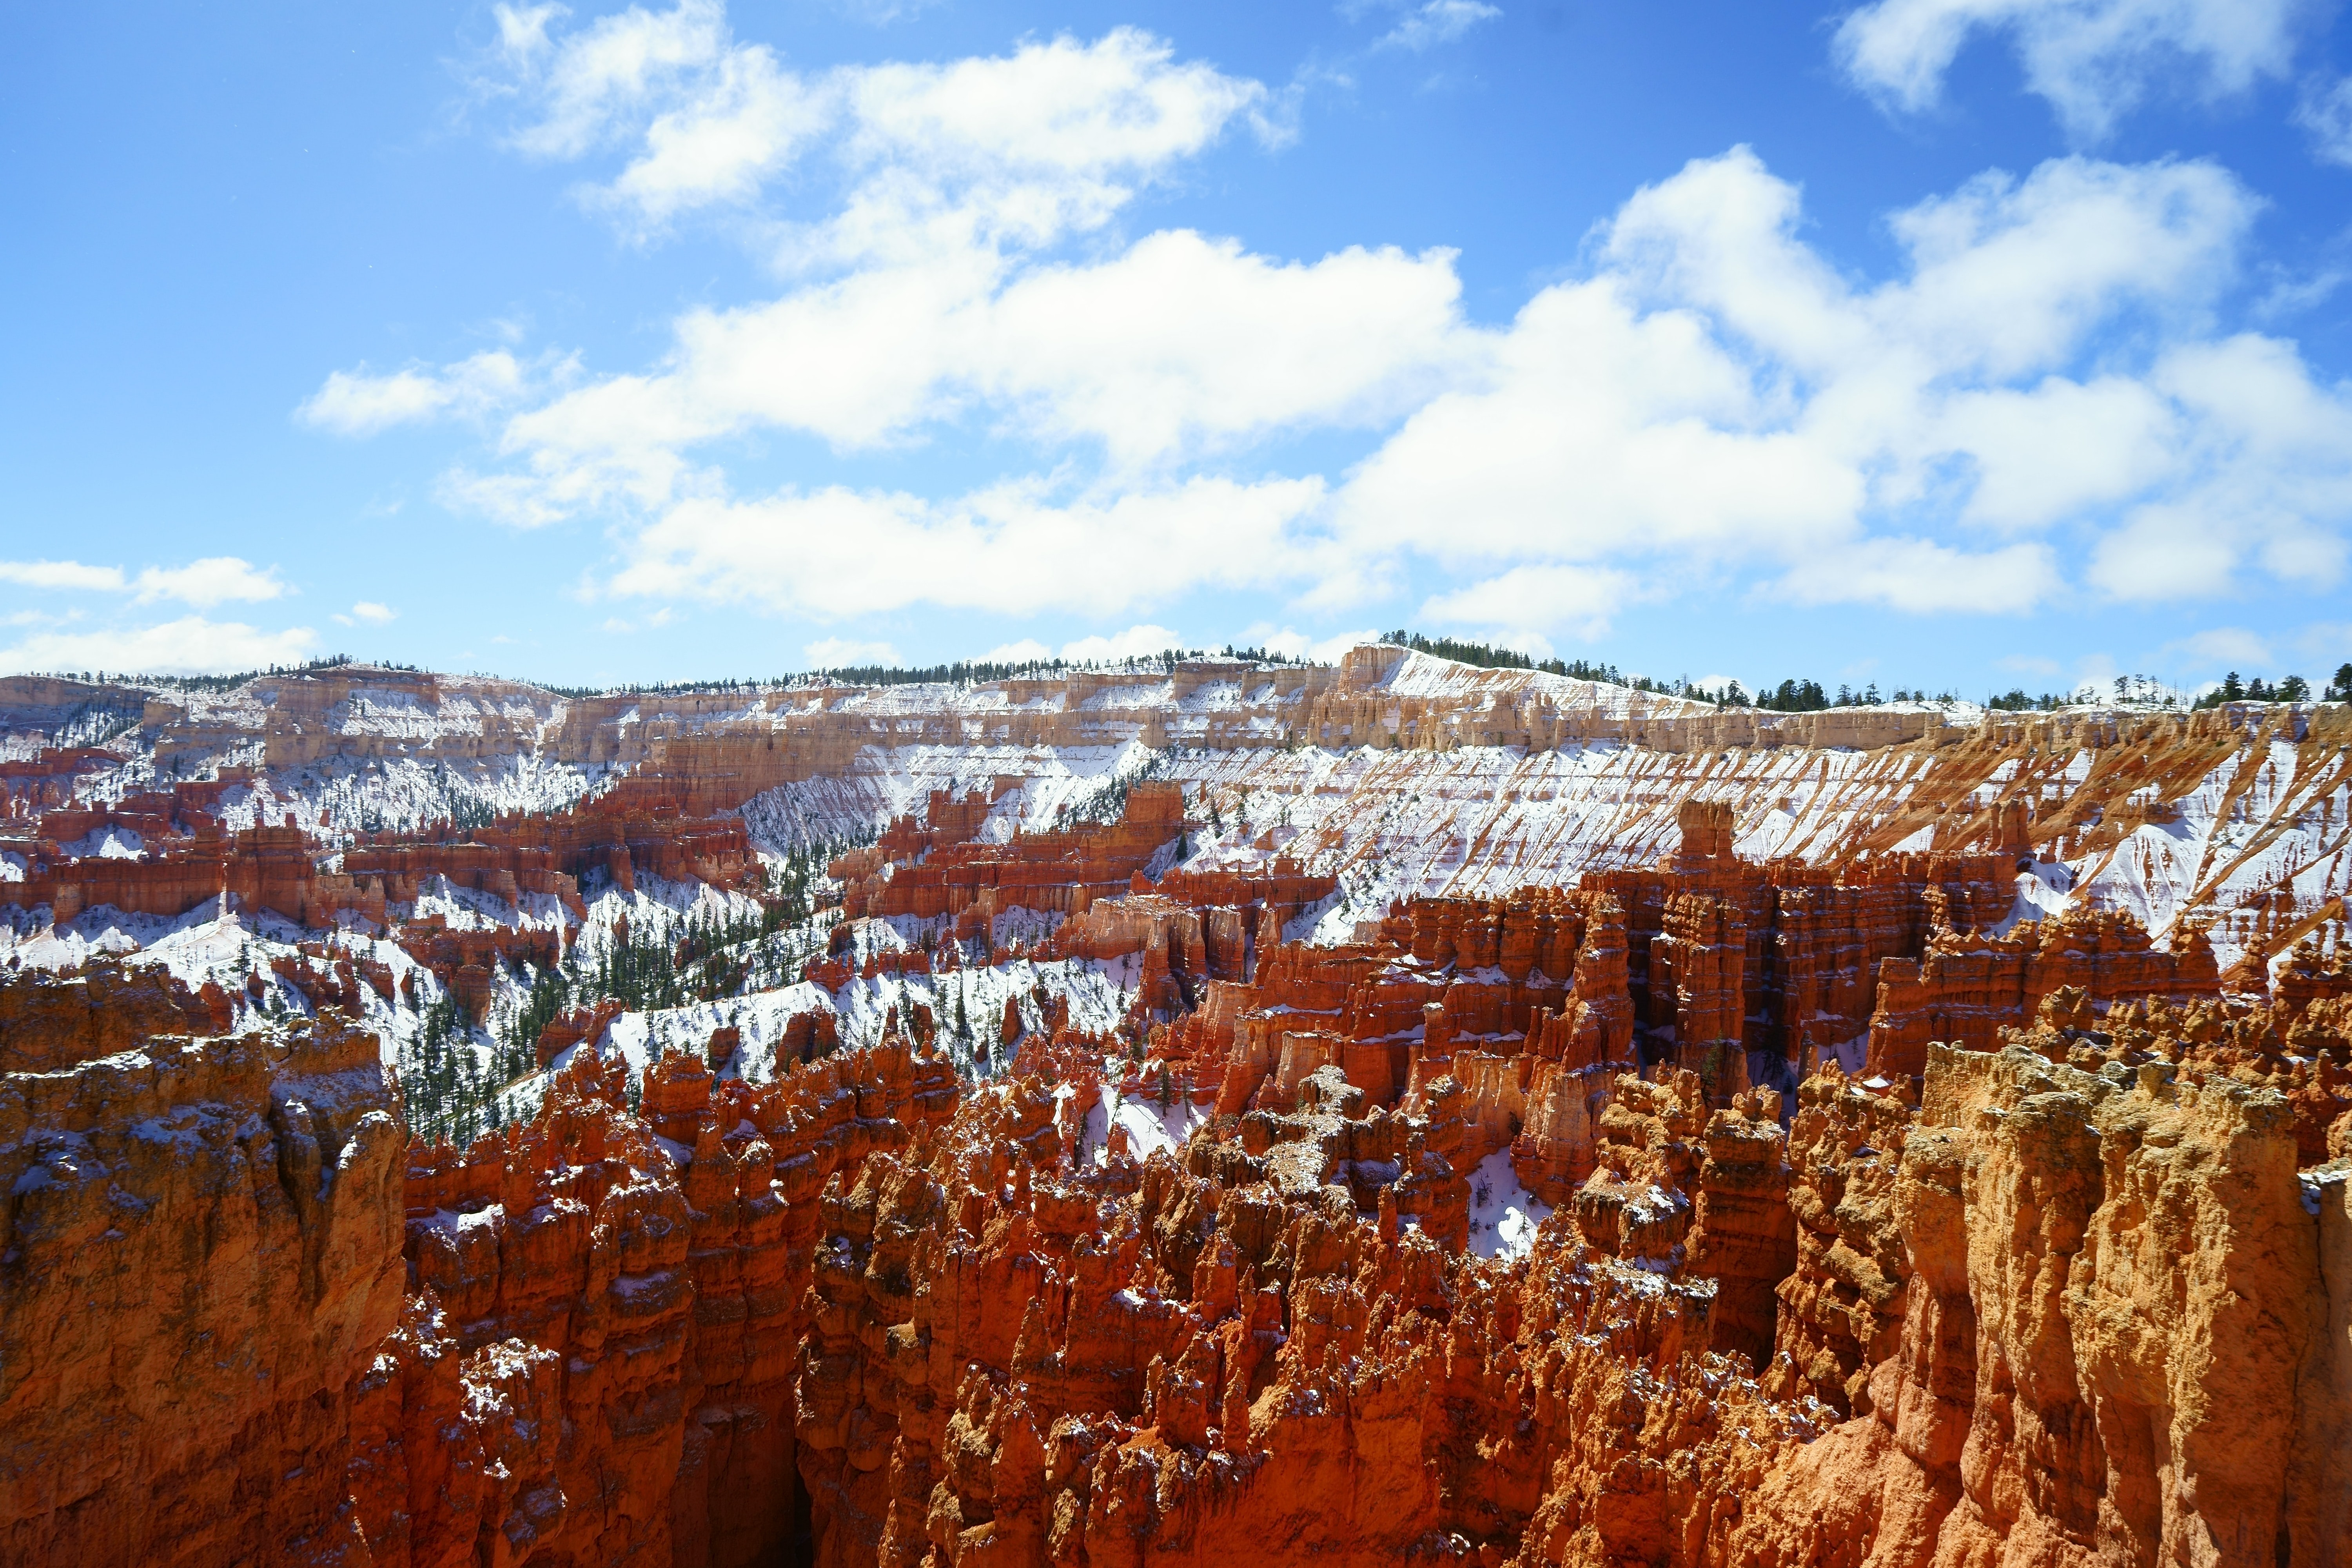 Red rock formations covered in snow at Bryce Canyon National Park